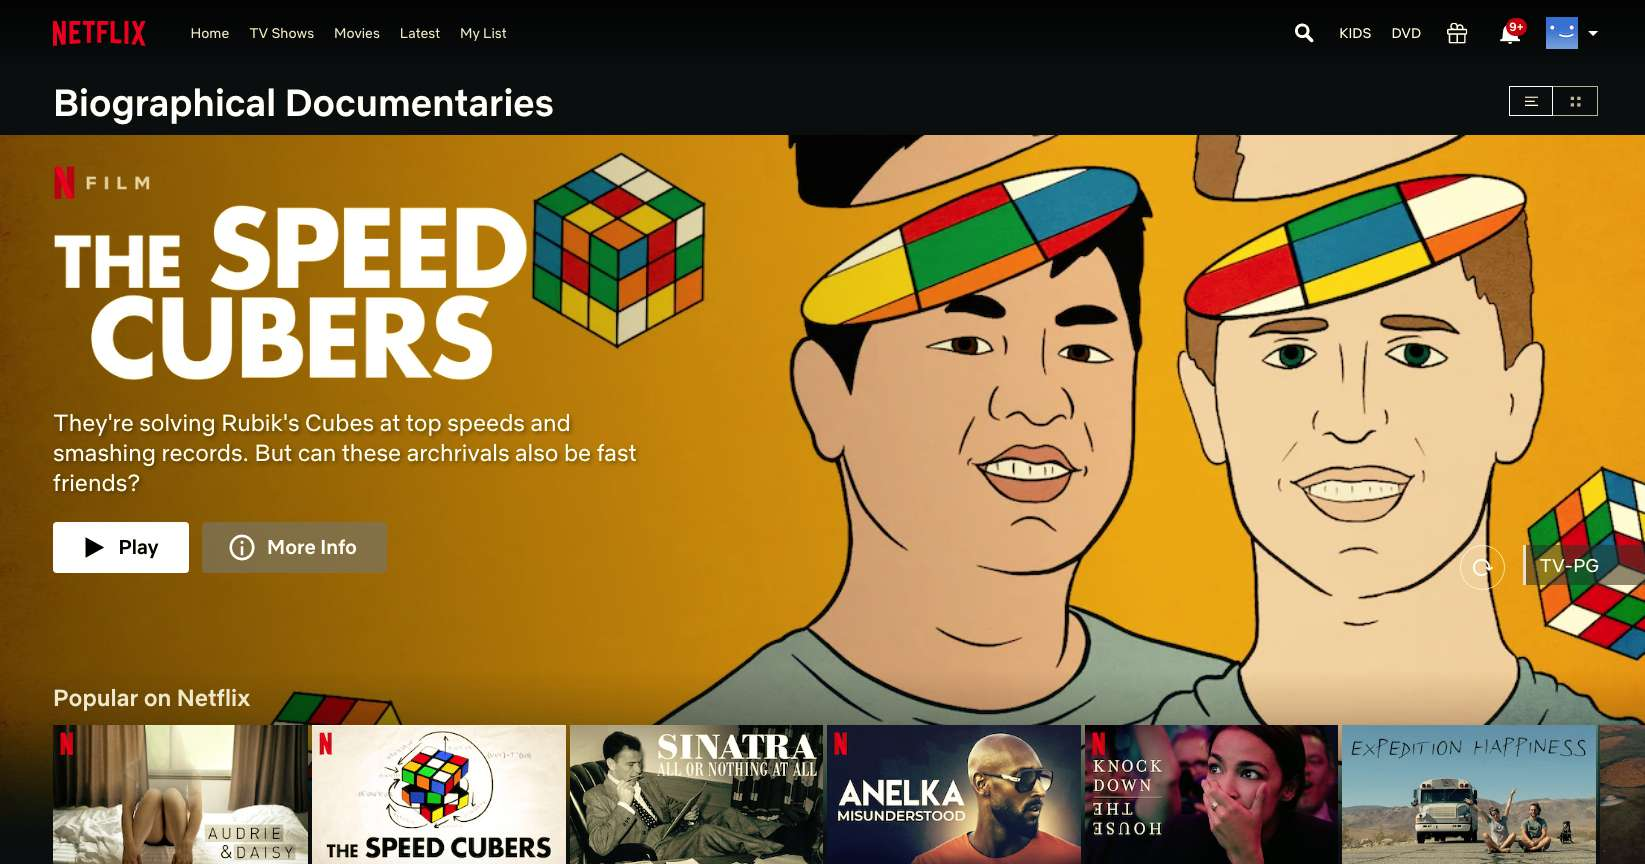 Speed Cubers Netflix documentary found with secret code